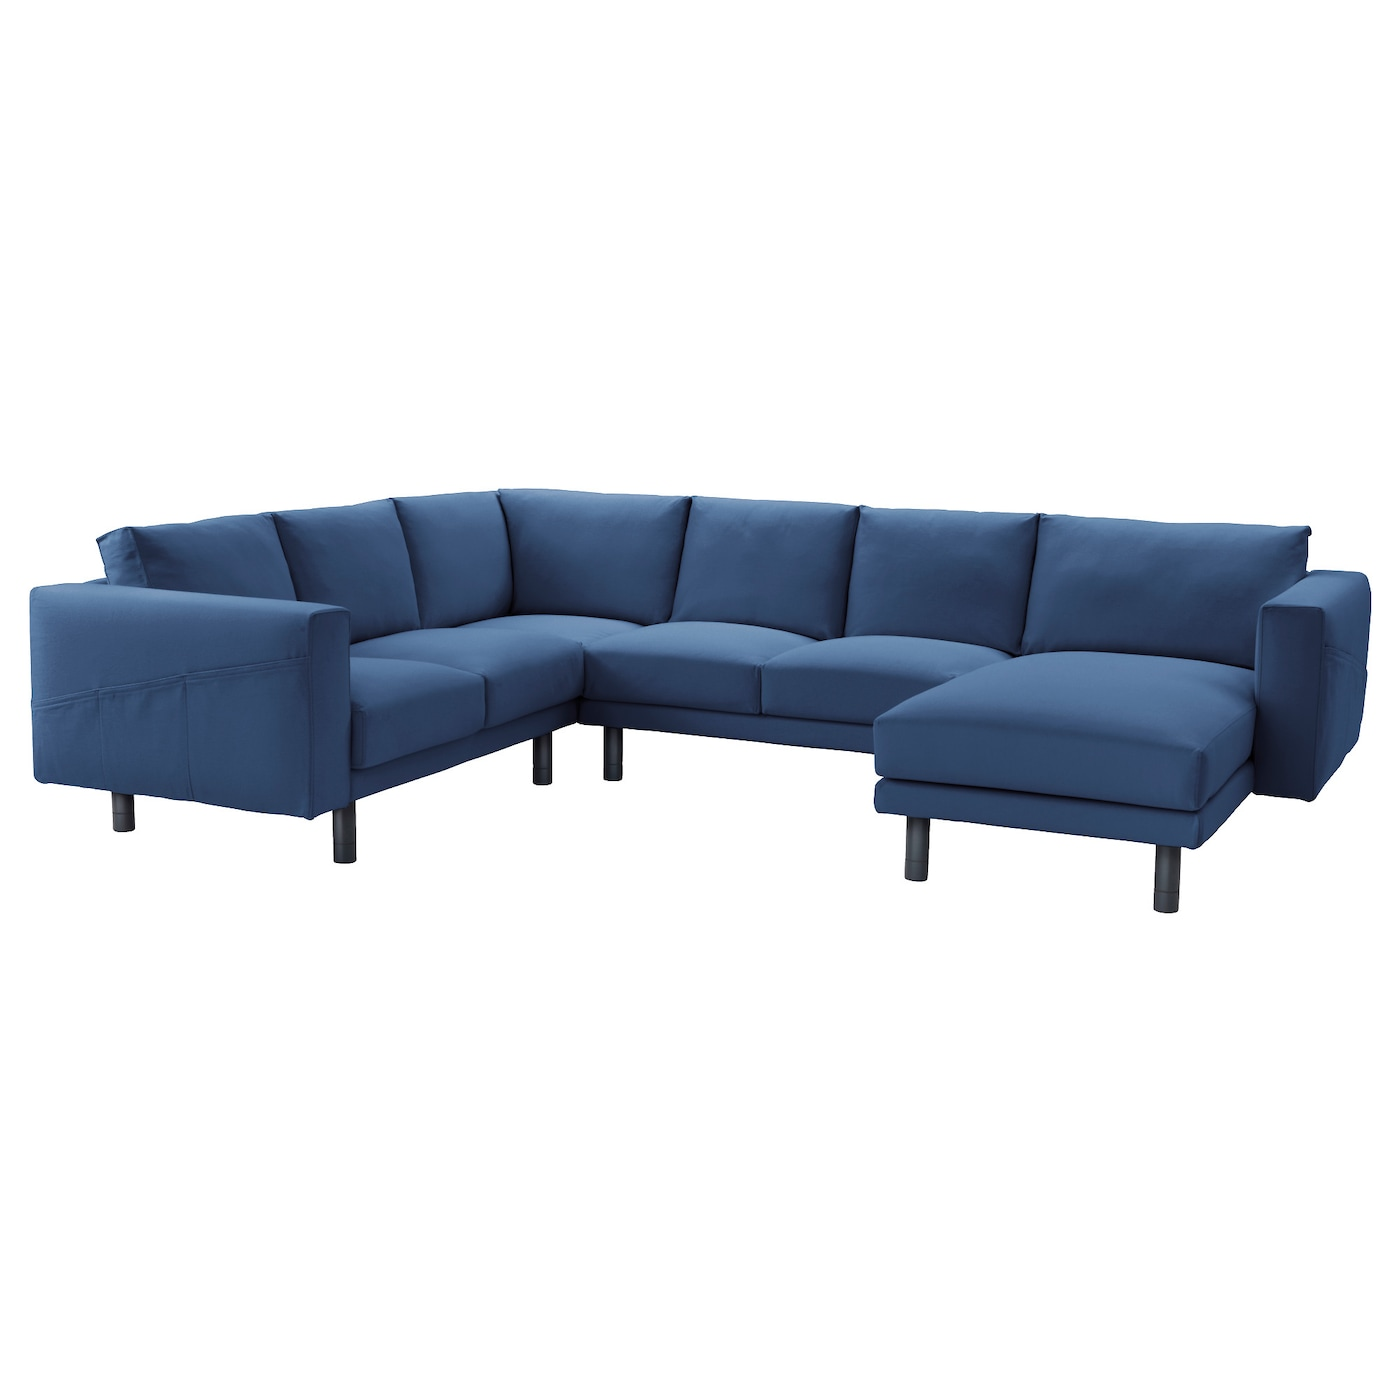 Norsborg corner sofa 2 2 with chaise longue gr sbo dark for Sofas chaise longue baratos modernos